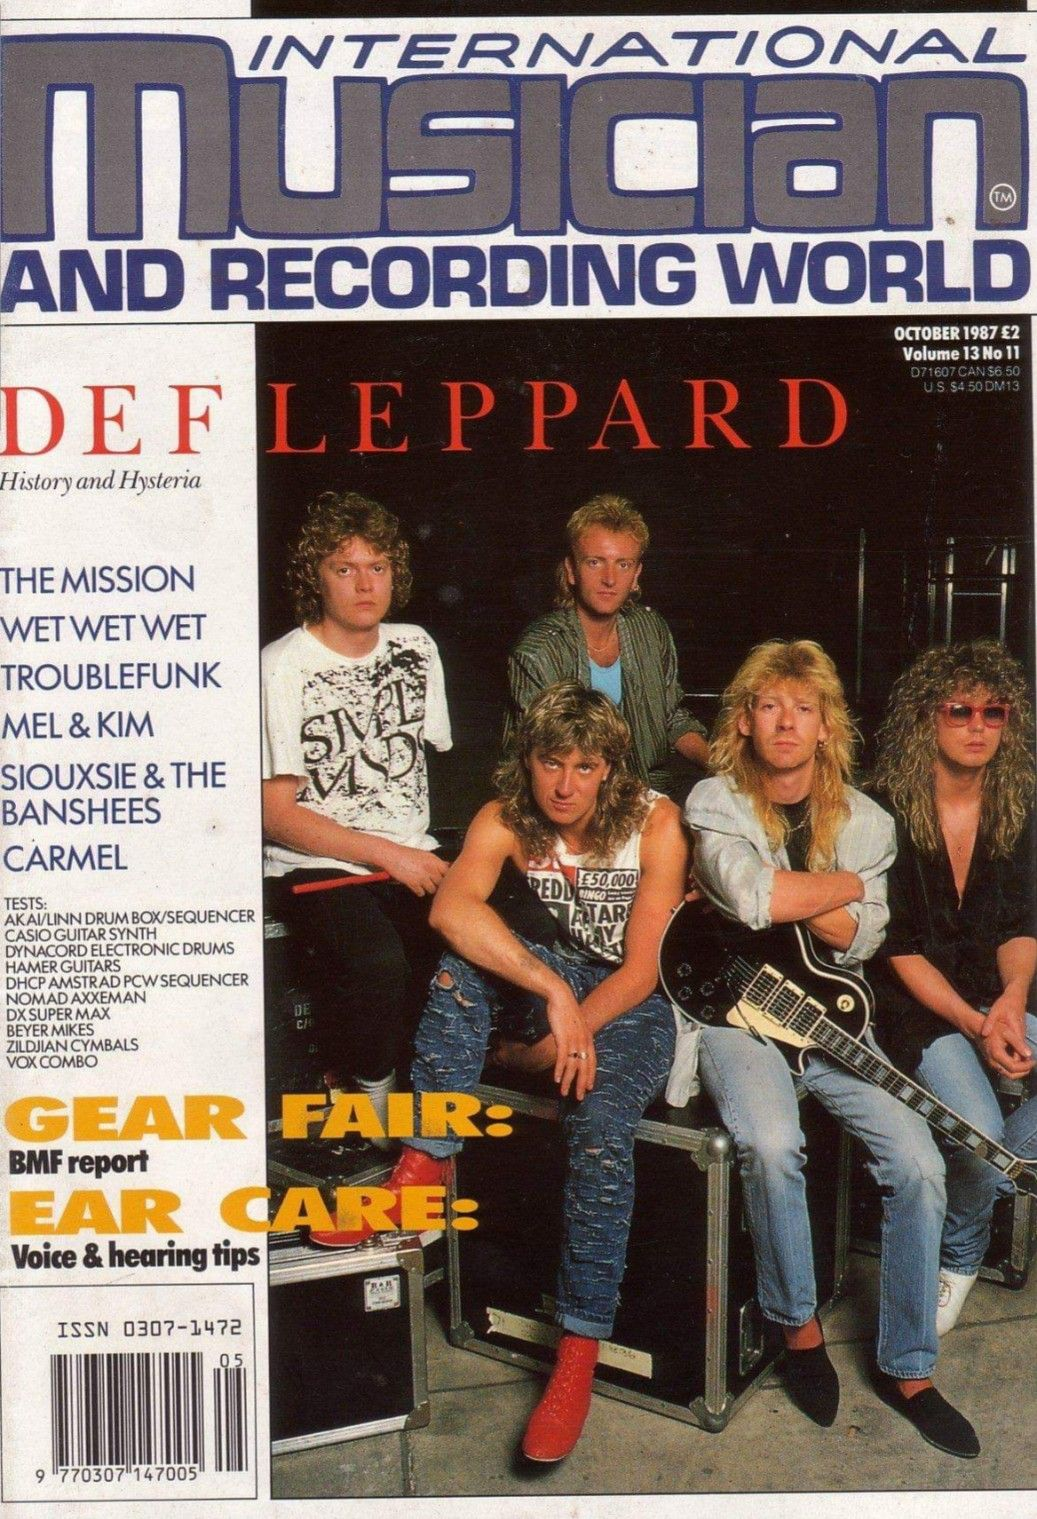 Pin by Sheryl on JE 1986 in 2019 | Def Leppard, Vivian campbell